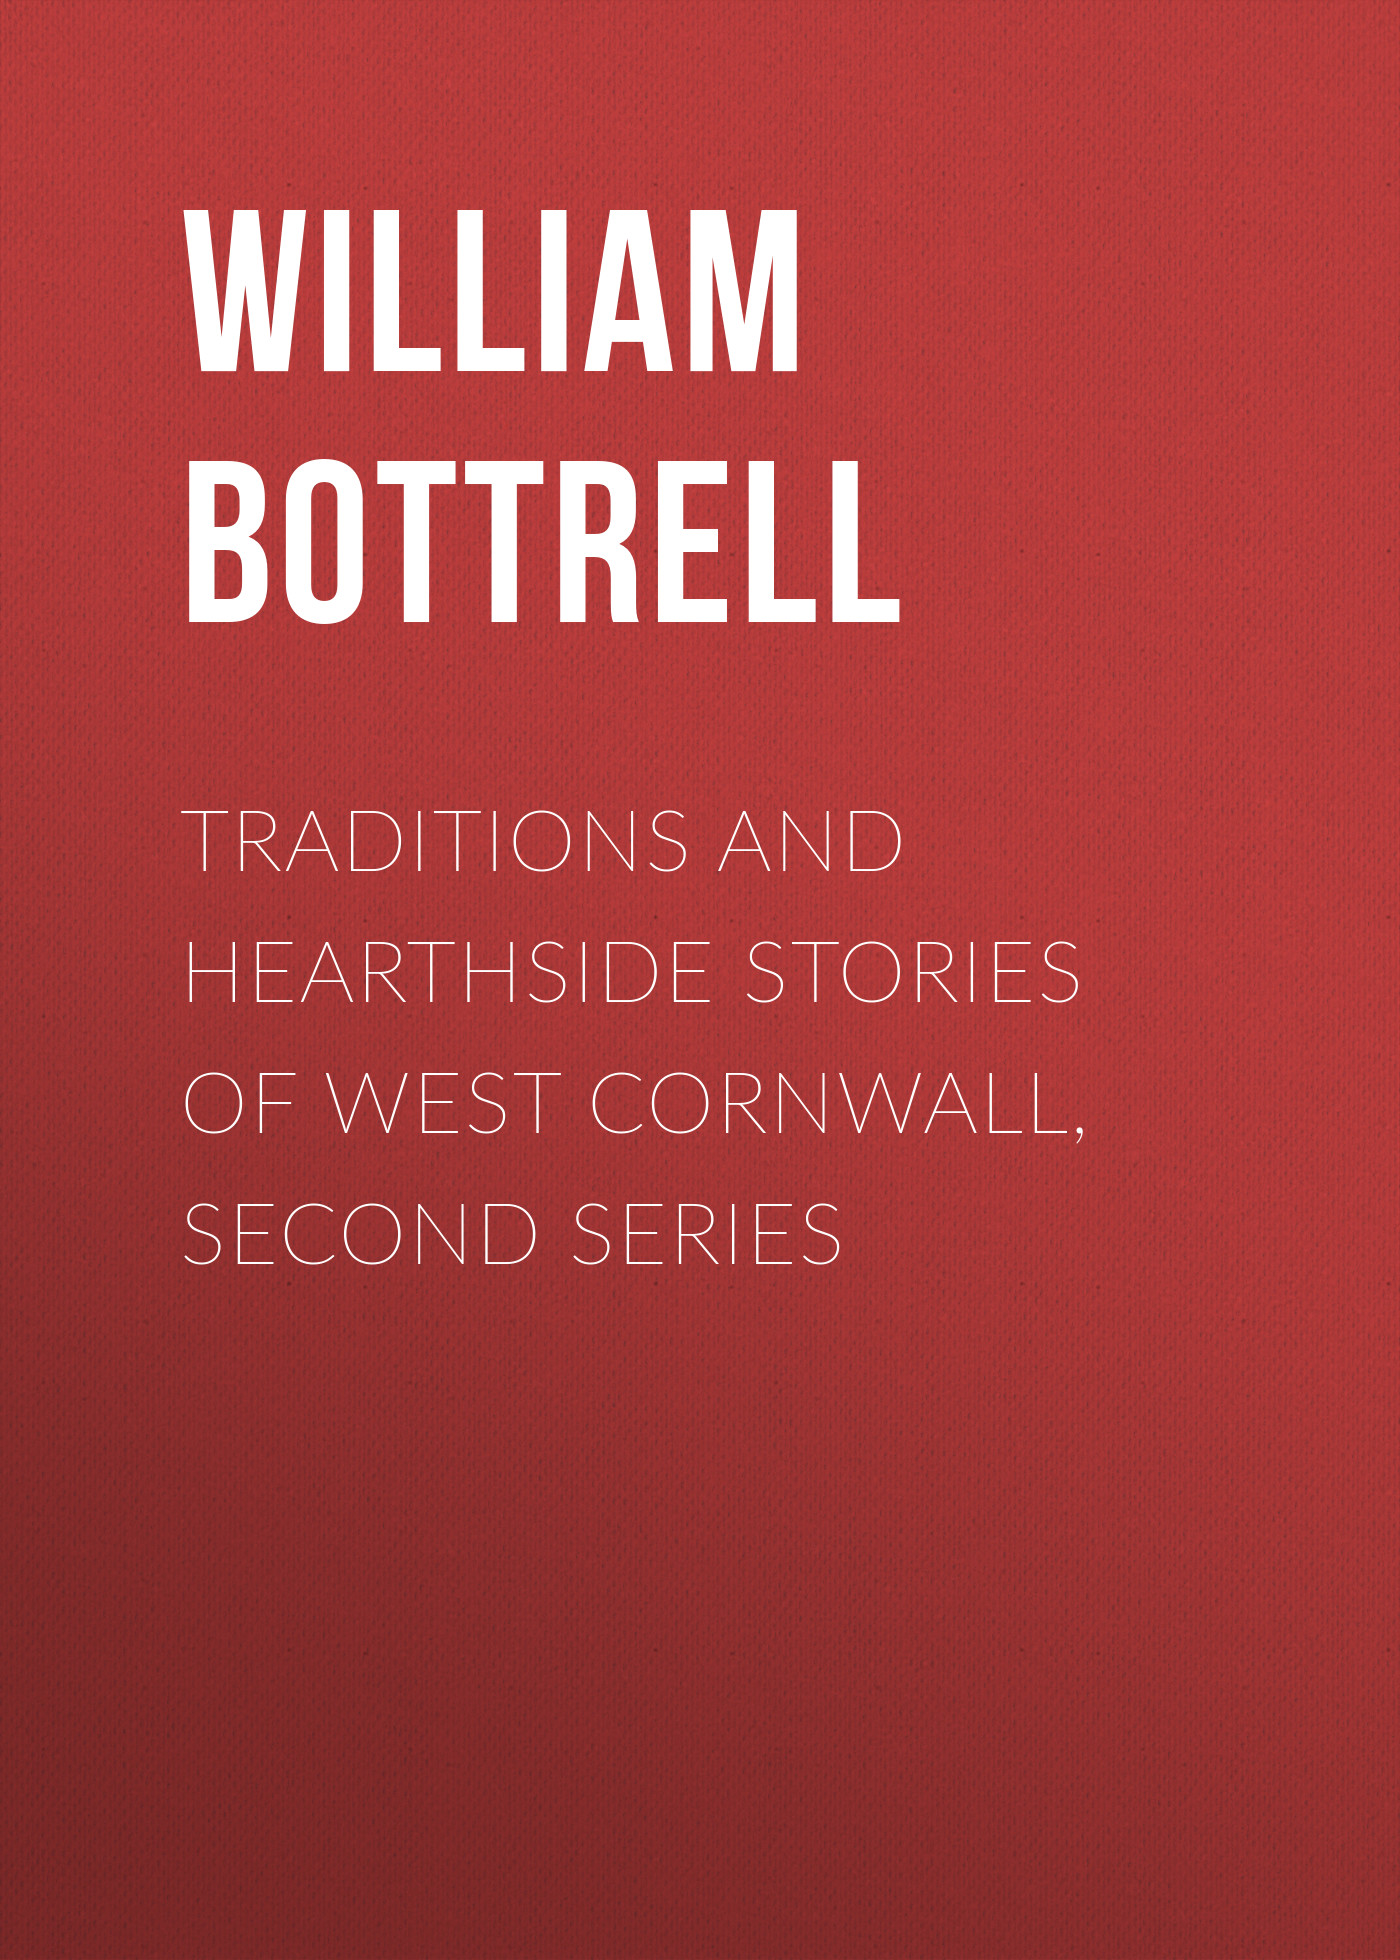 Bottrell William Traditions and Hearthside Stories of West Cornwall, Second Series william h ukers all about coffee second edition